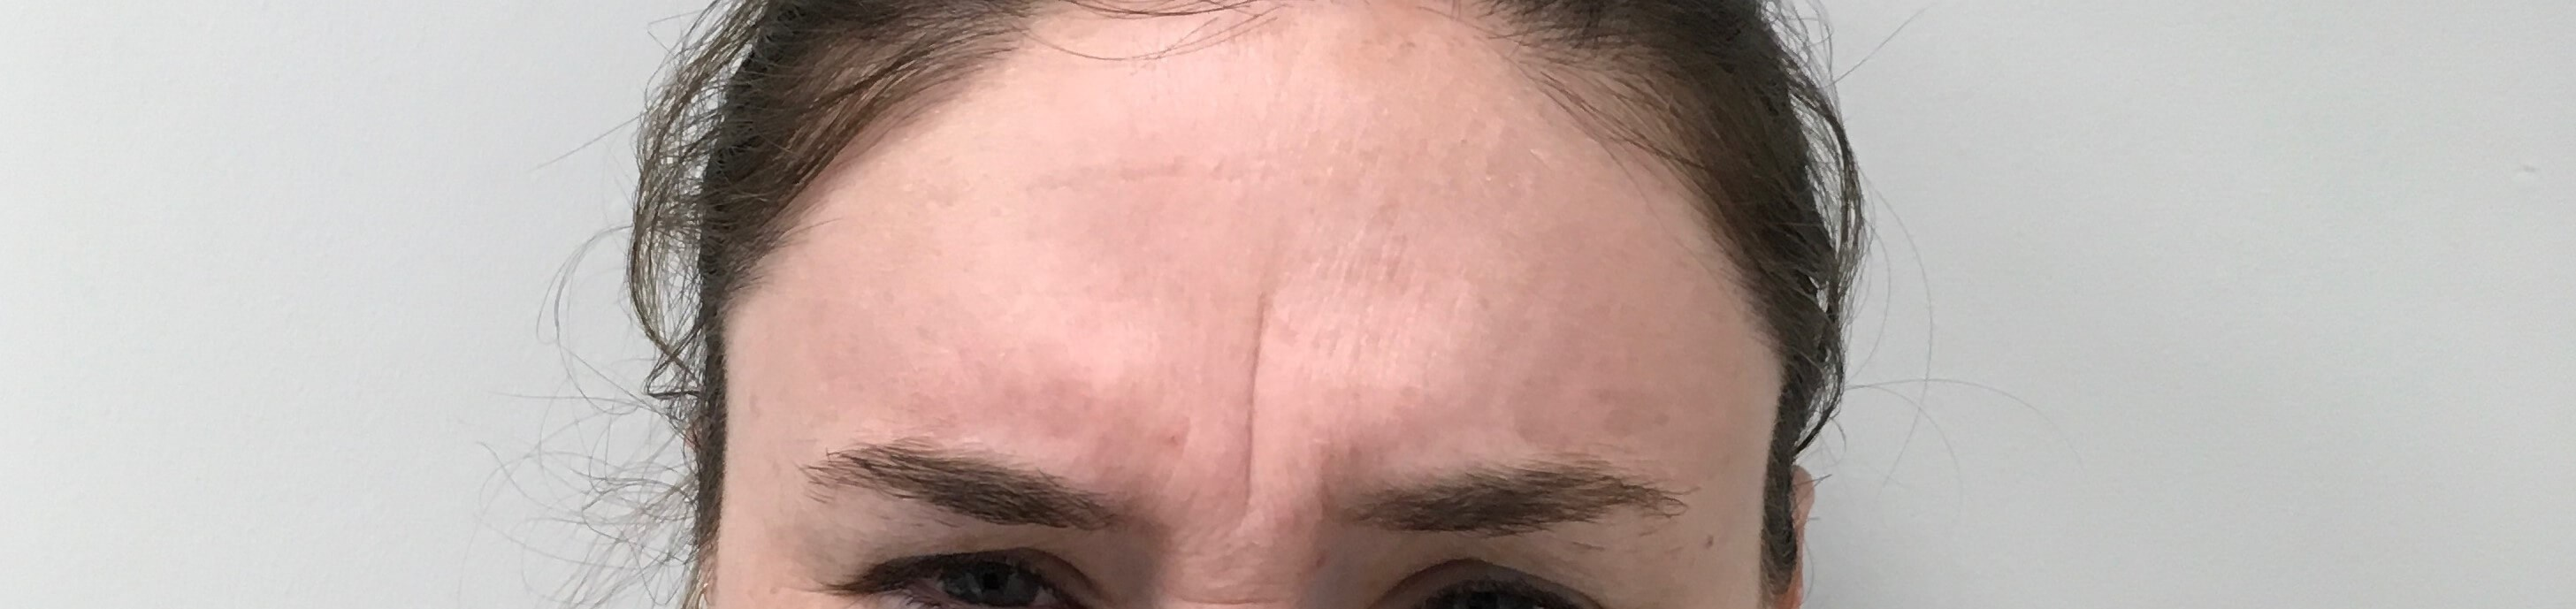 Botox on Forehead Before